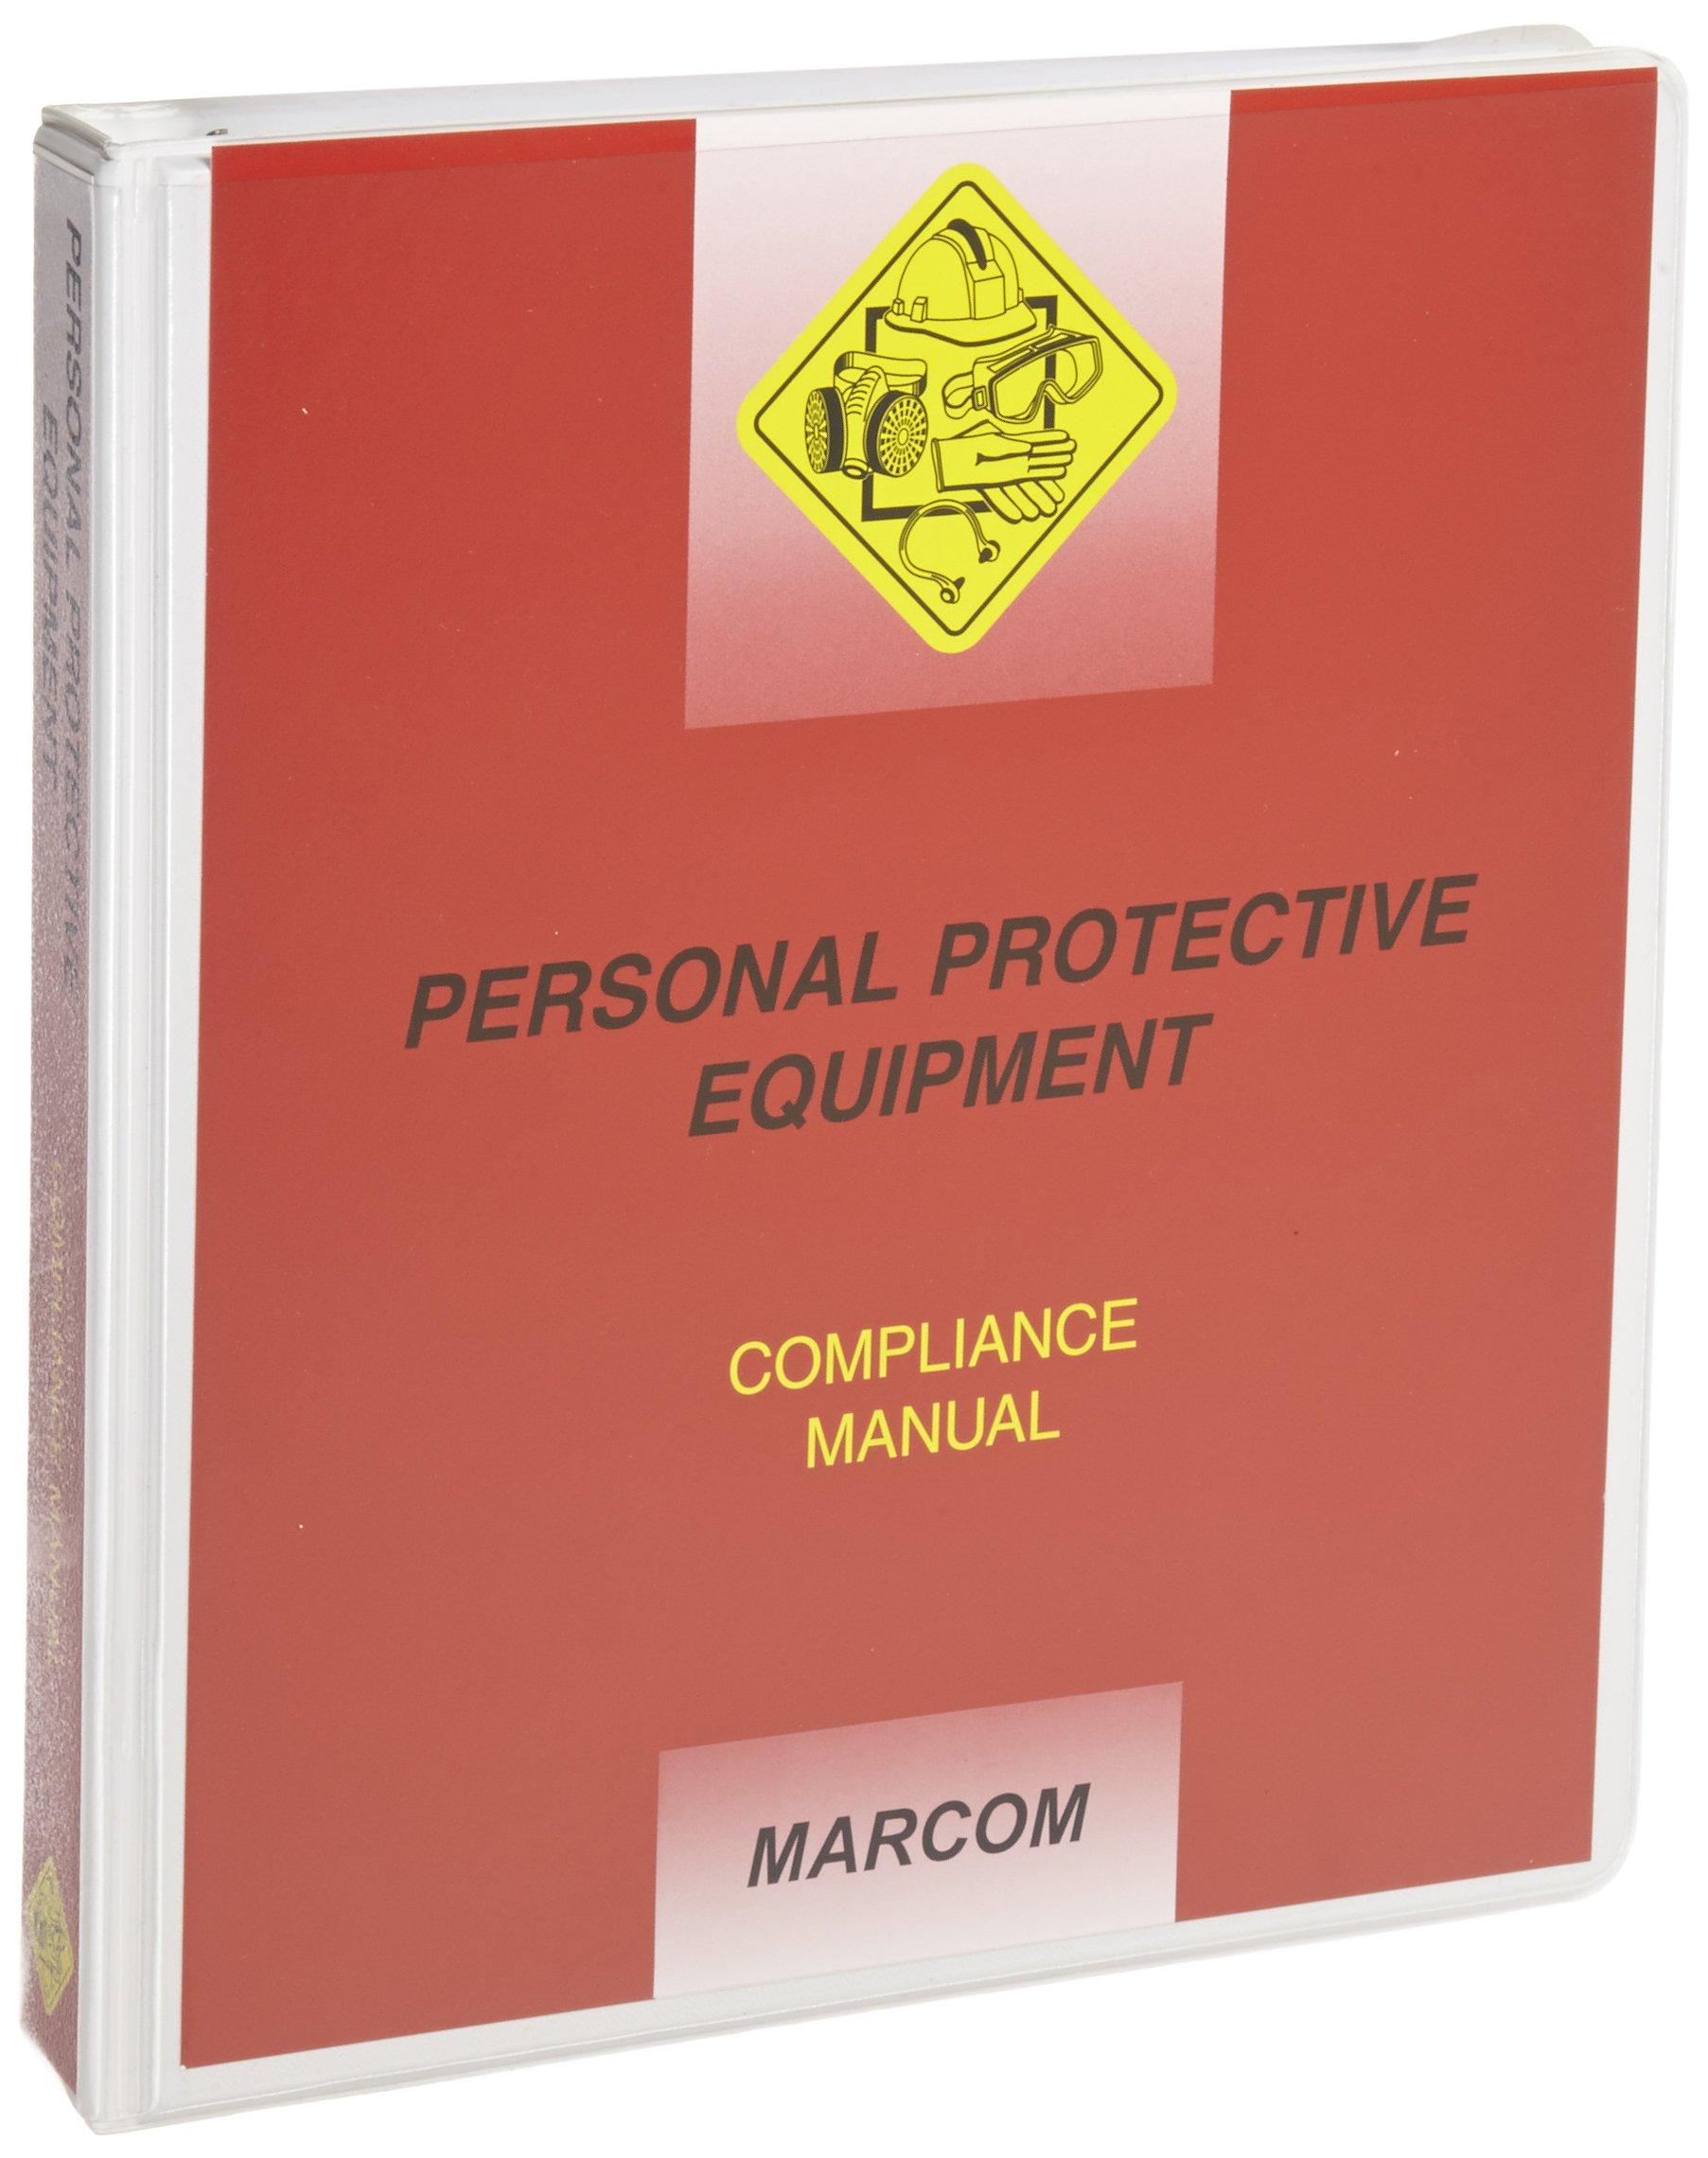 MARCOM Personal Protective Equipment Compliance Manual